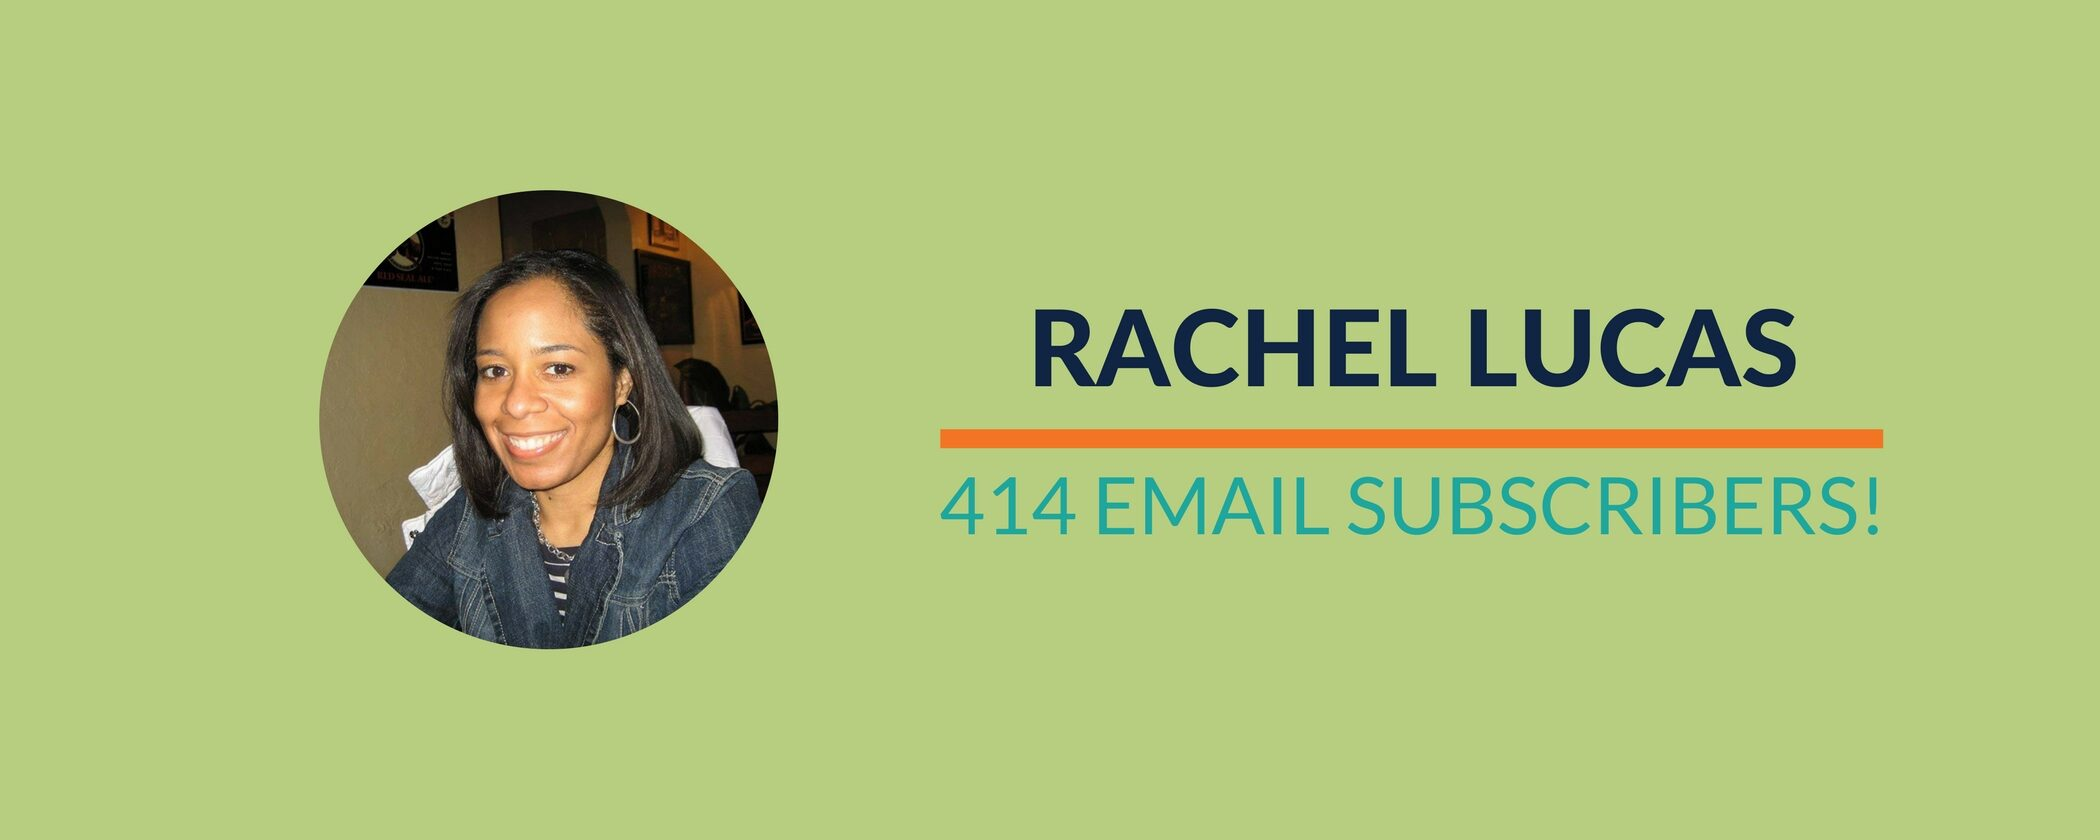 Success Story: Rachel's 414 email subscribers in 3 weeks!